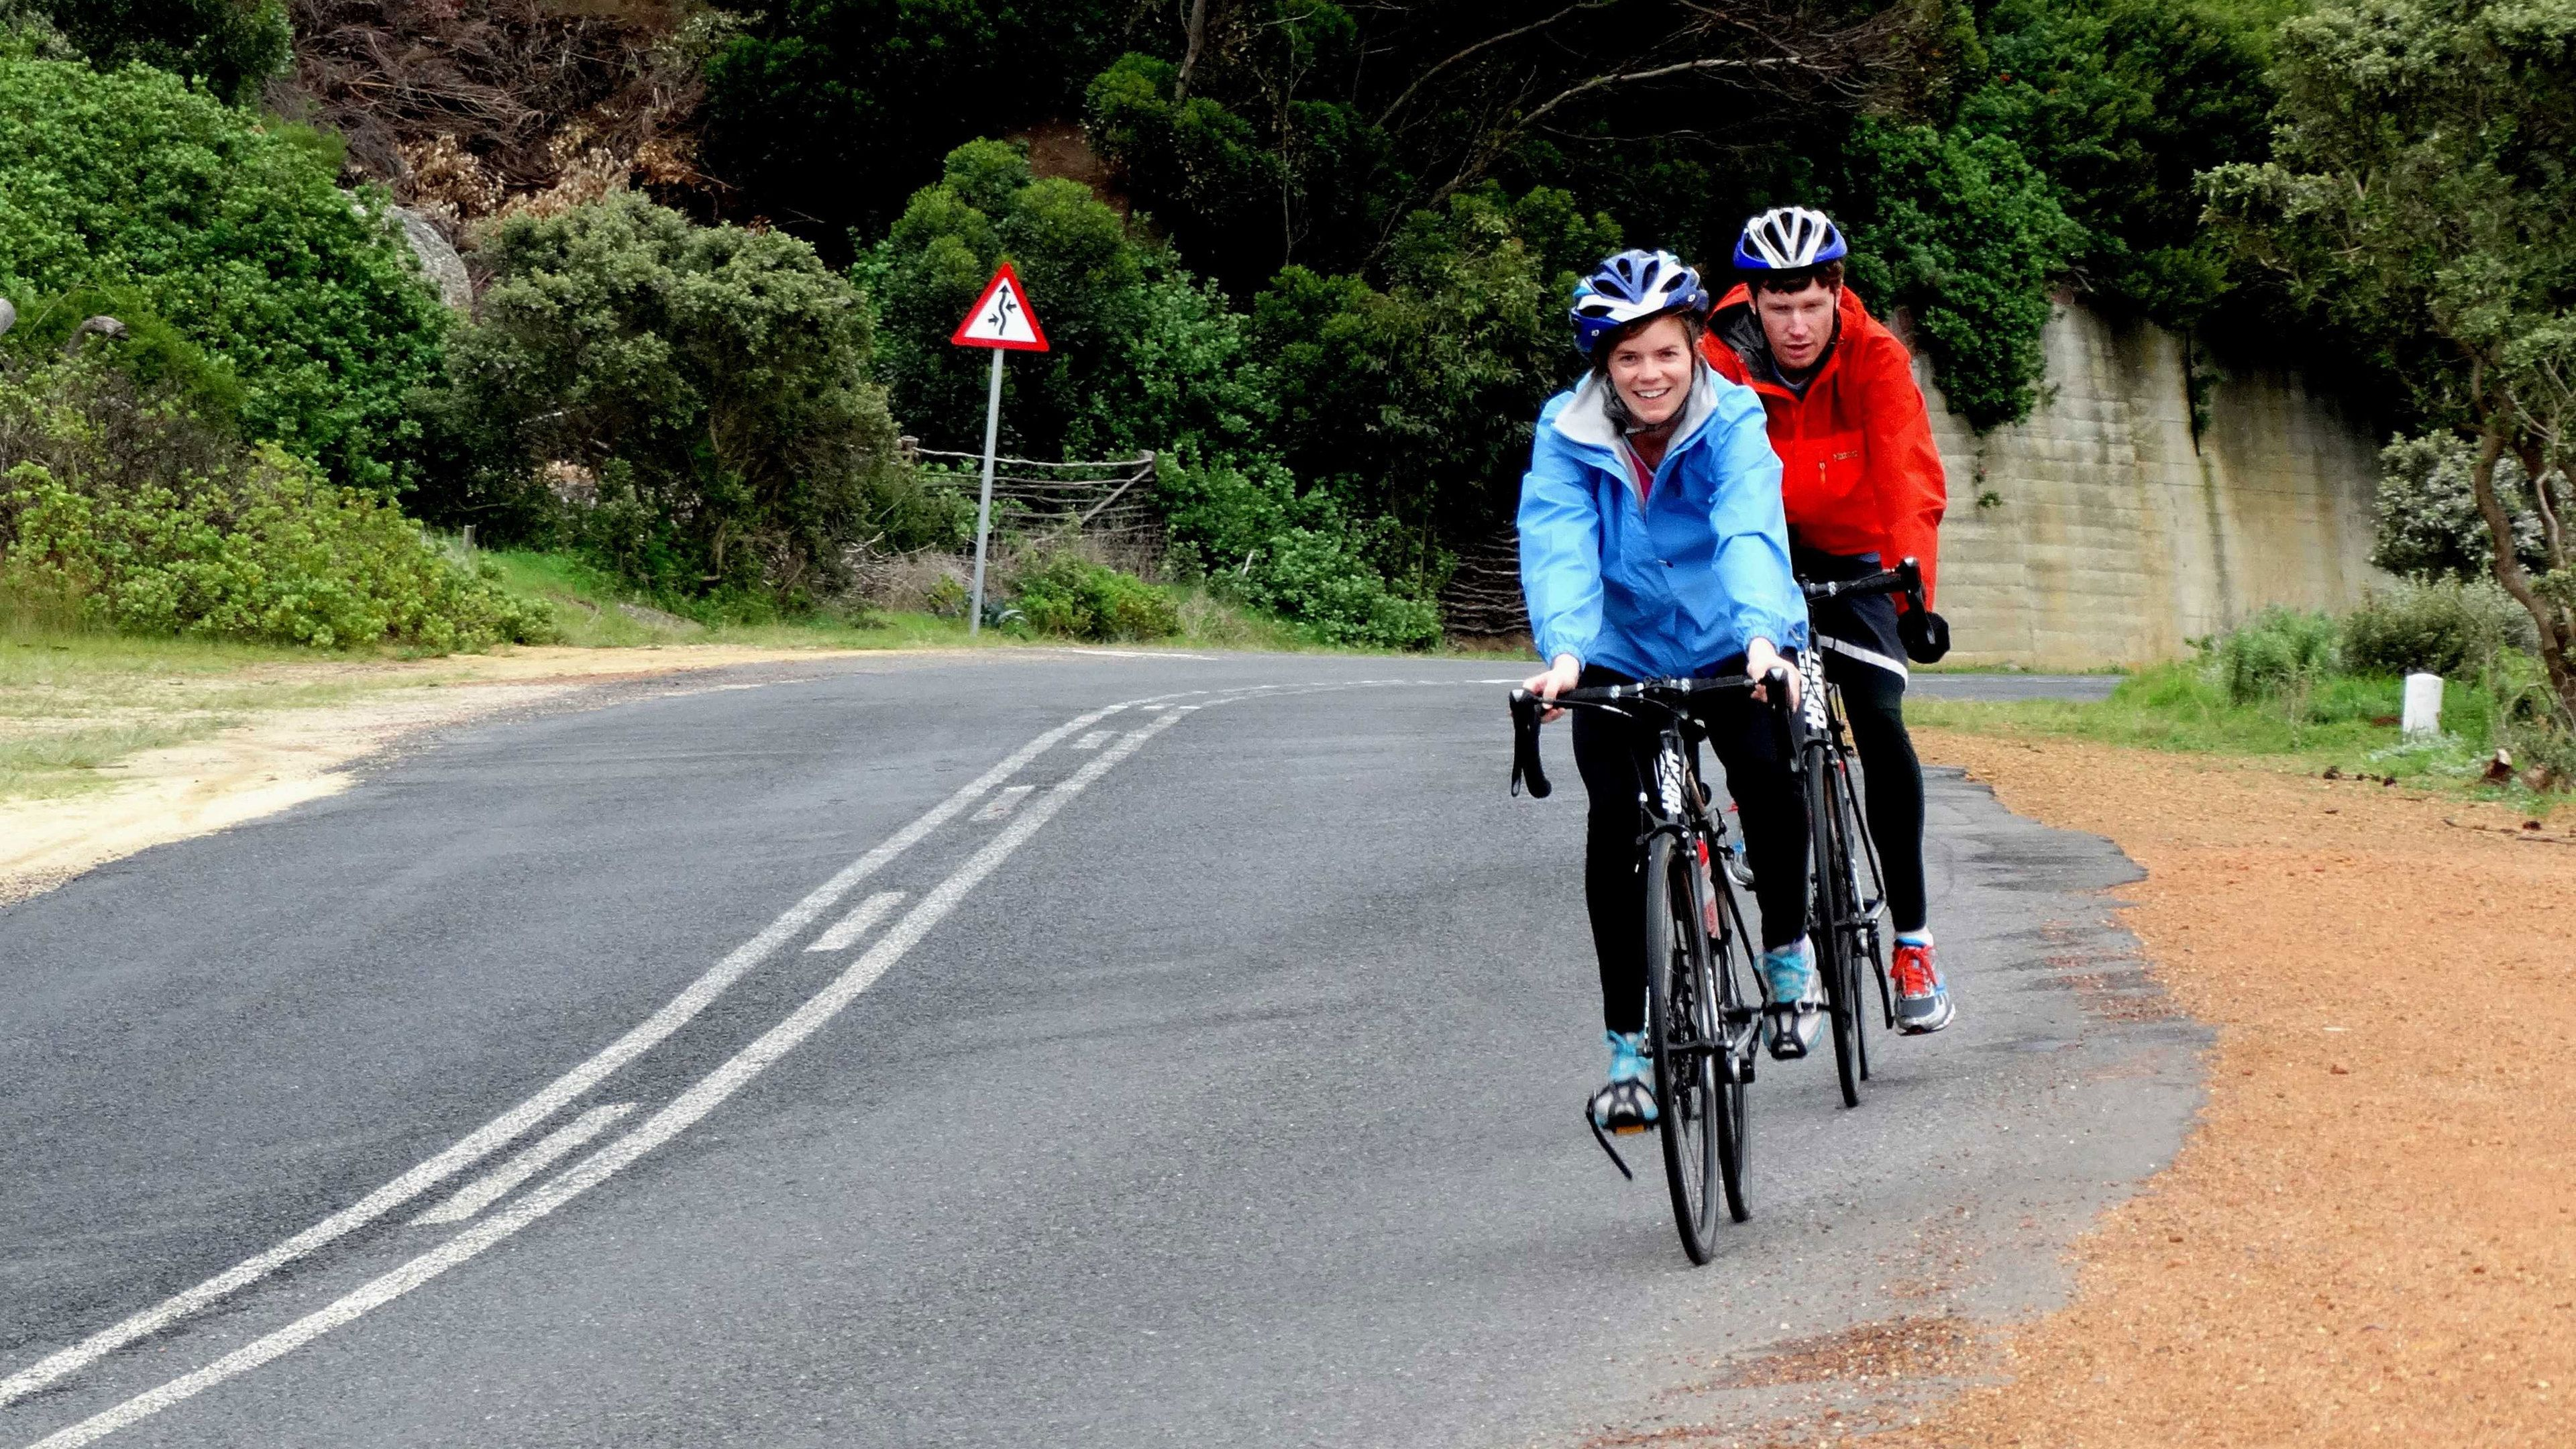 Two people on bikes down a country road